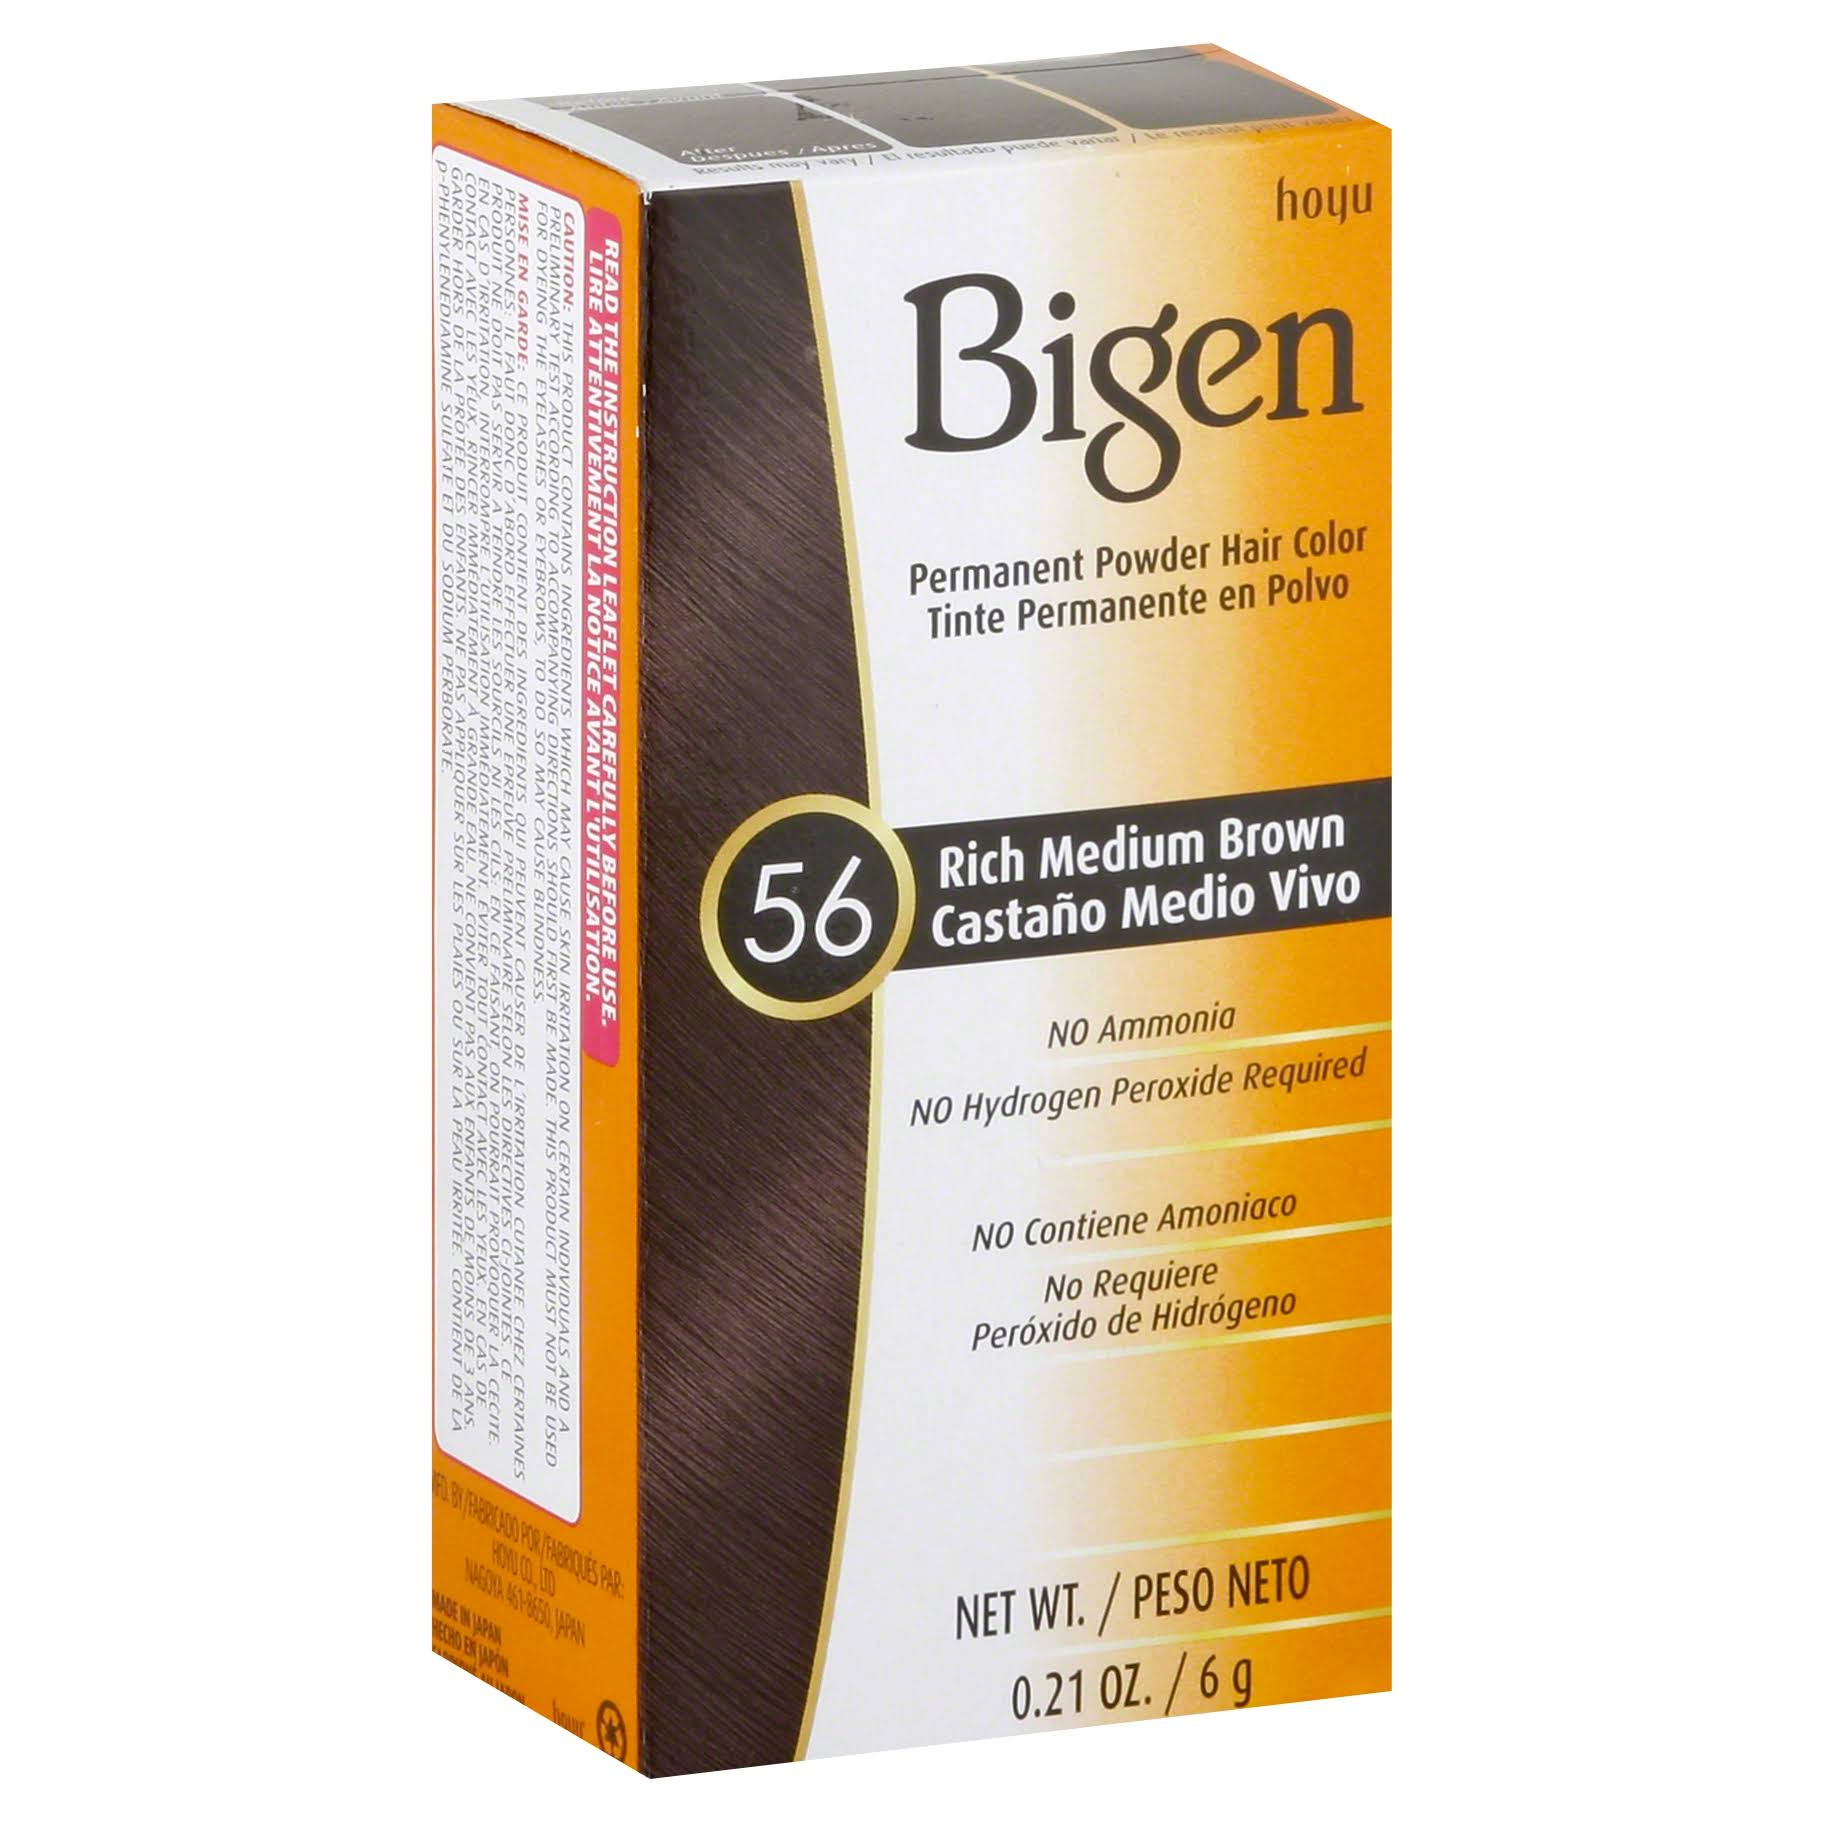 Hoyu Bigen Permanent Powder Hair Color - 56 Rich Medium Brown, 0.21oz